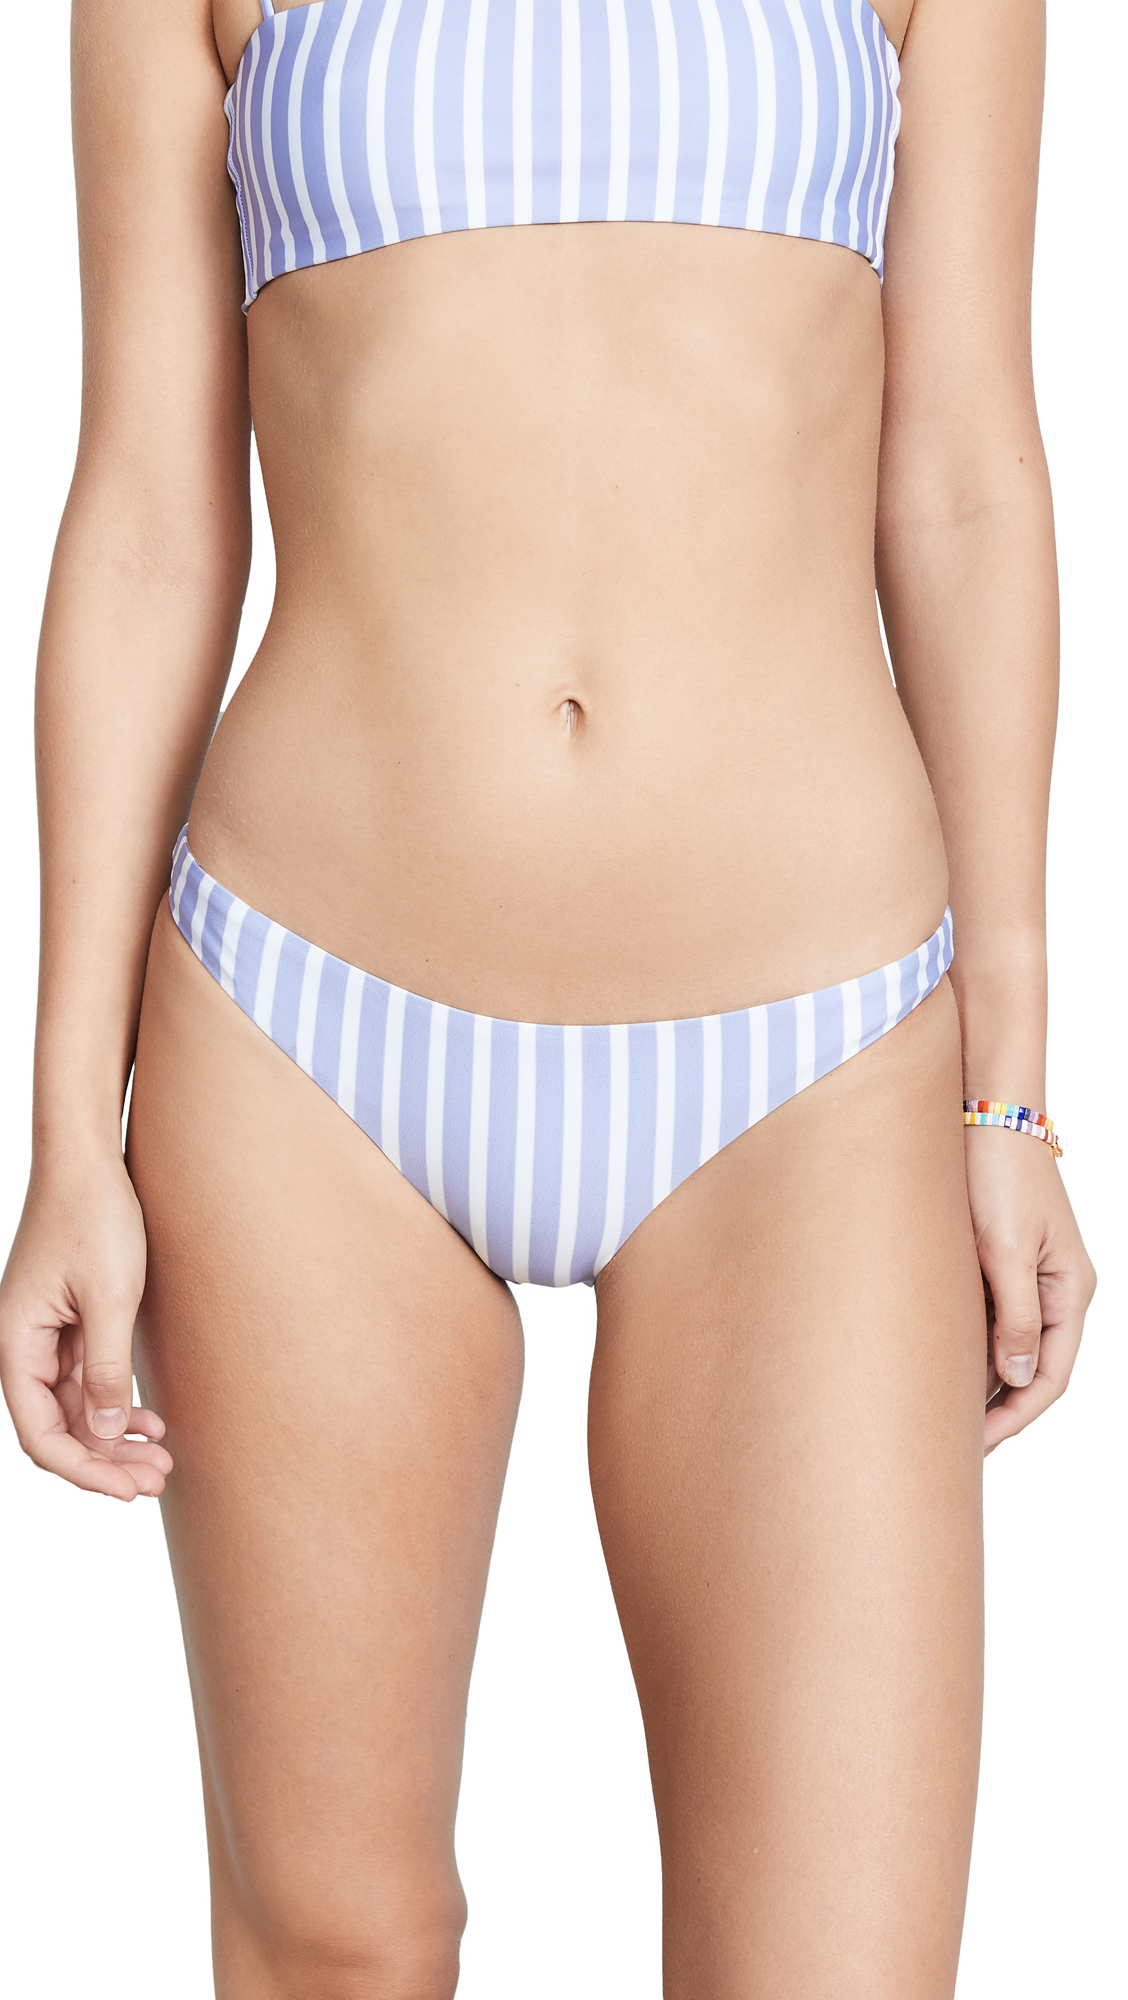 SAME SWIM Brief Bottoms In Mediterranean Stripe